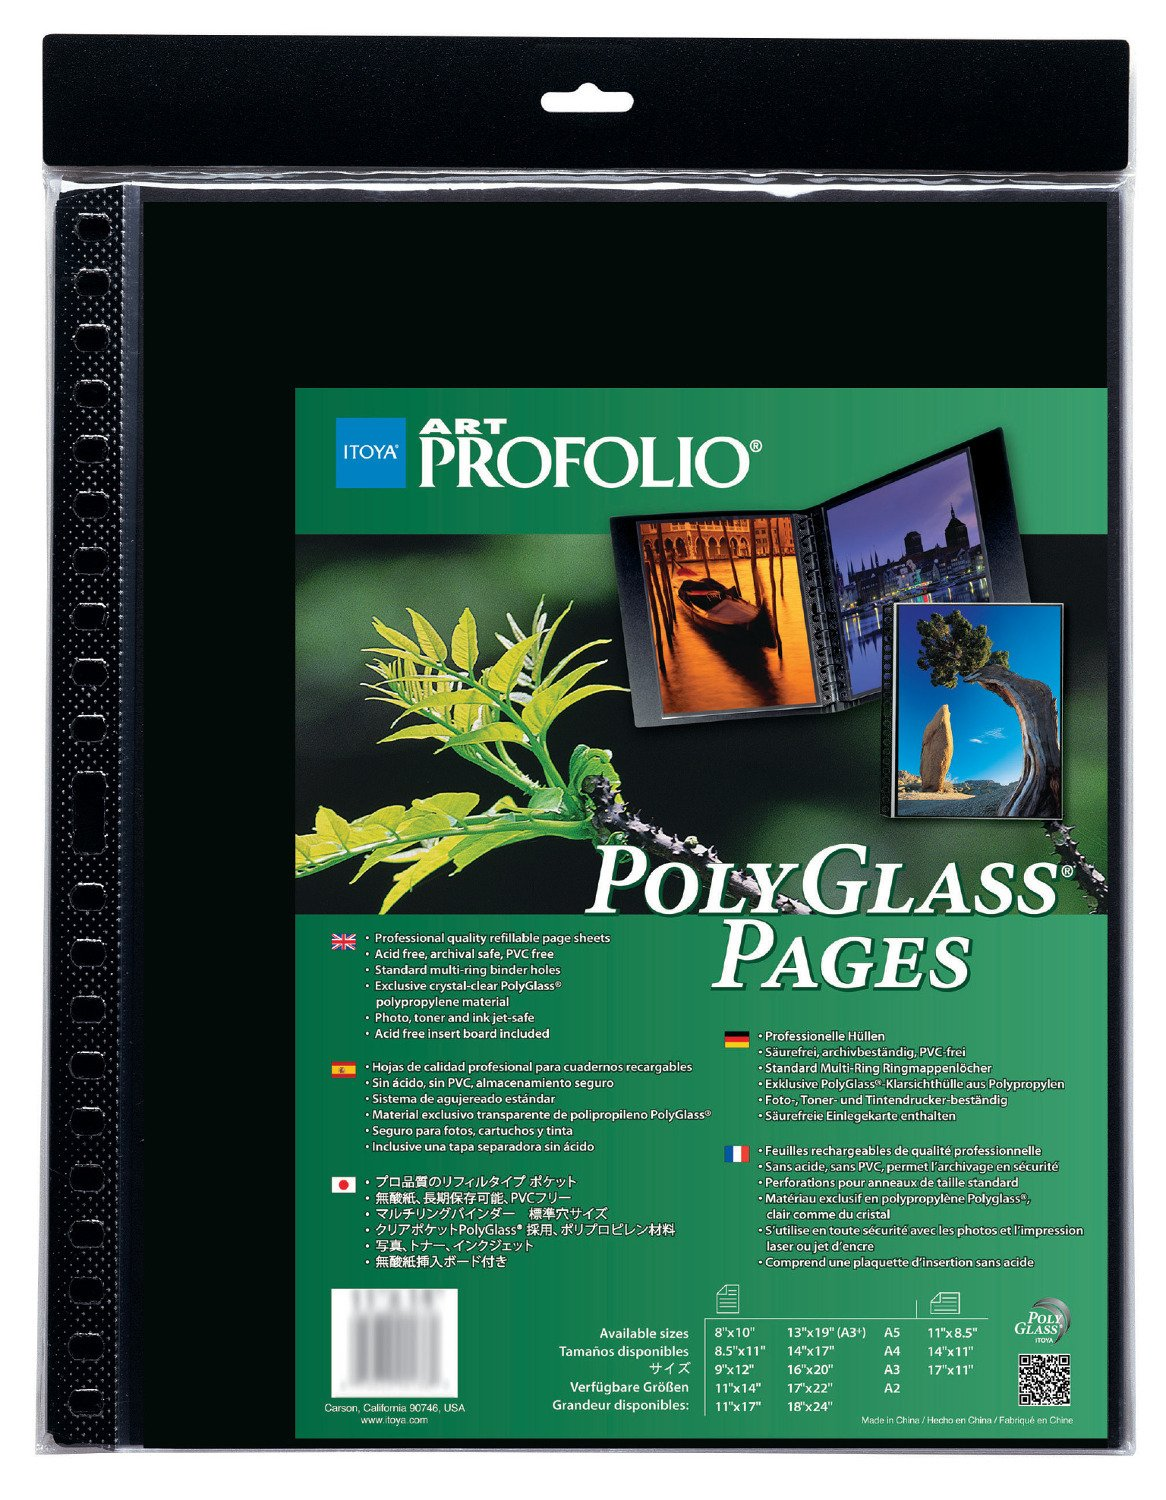 Itoya Art Profolio 16'' x 20'' Crystal Clear PolyGlass Pages, 10 Pages Per Pack by ITOYA